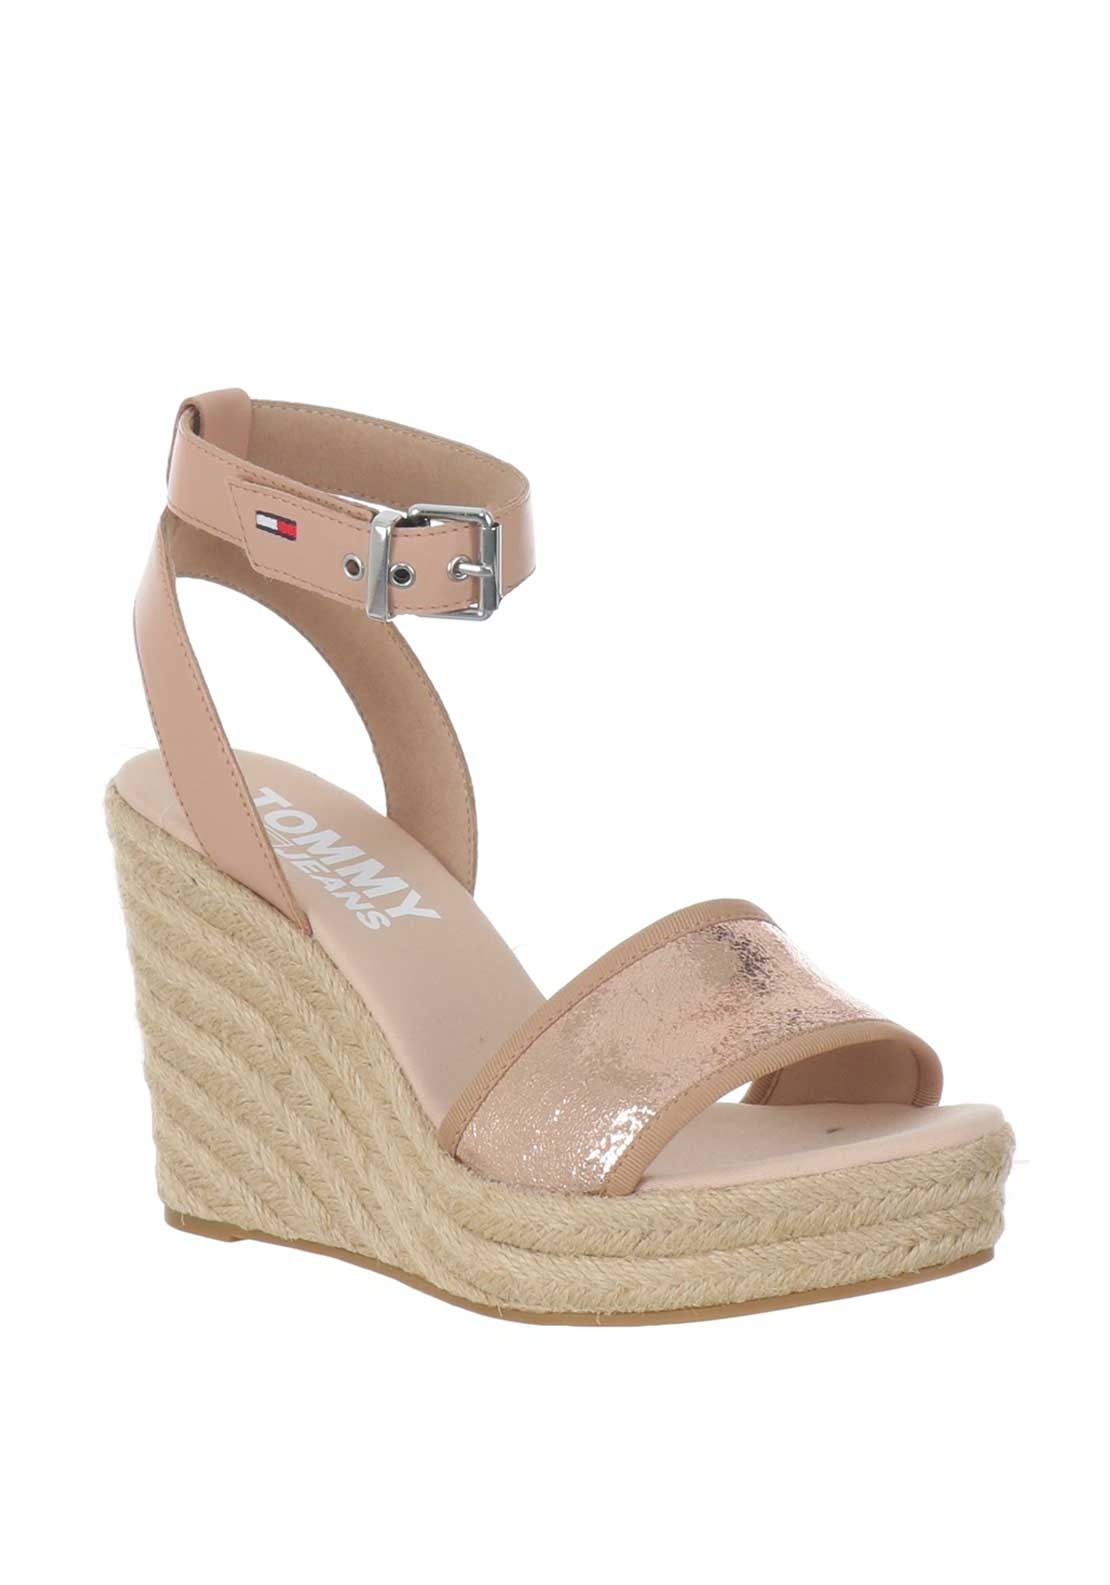 b4f3fbb6 Tommy Jeans Womens Metallic Wedged Sandals, Rose Gold   McElhinneys